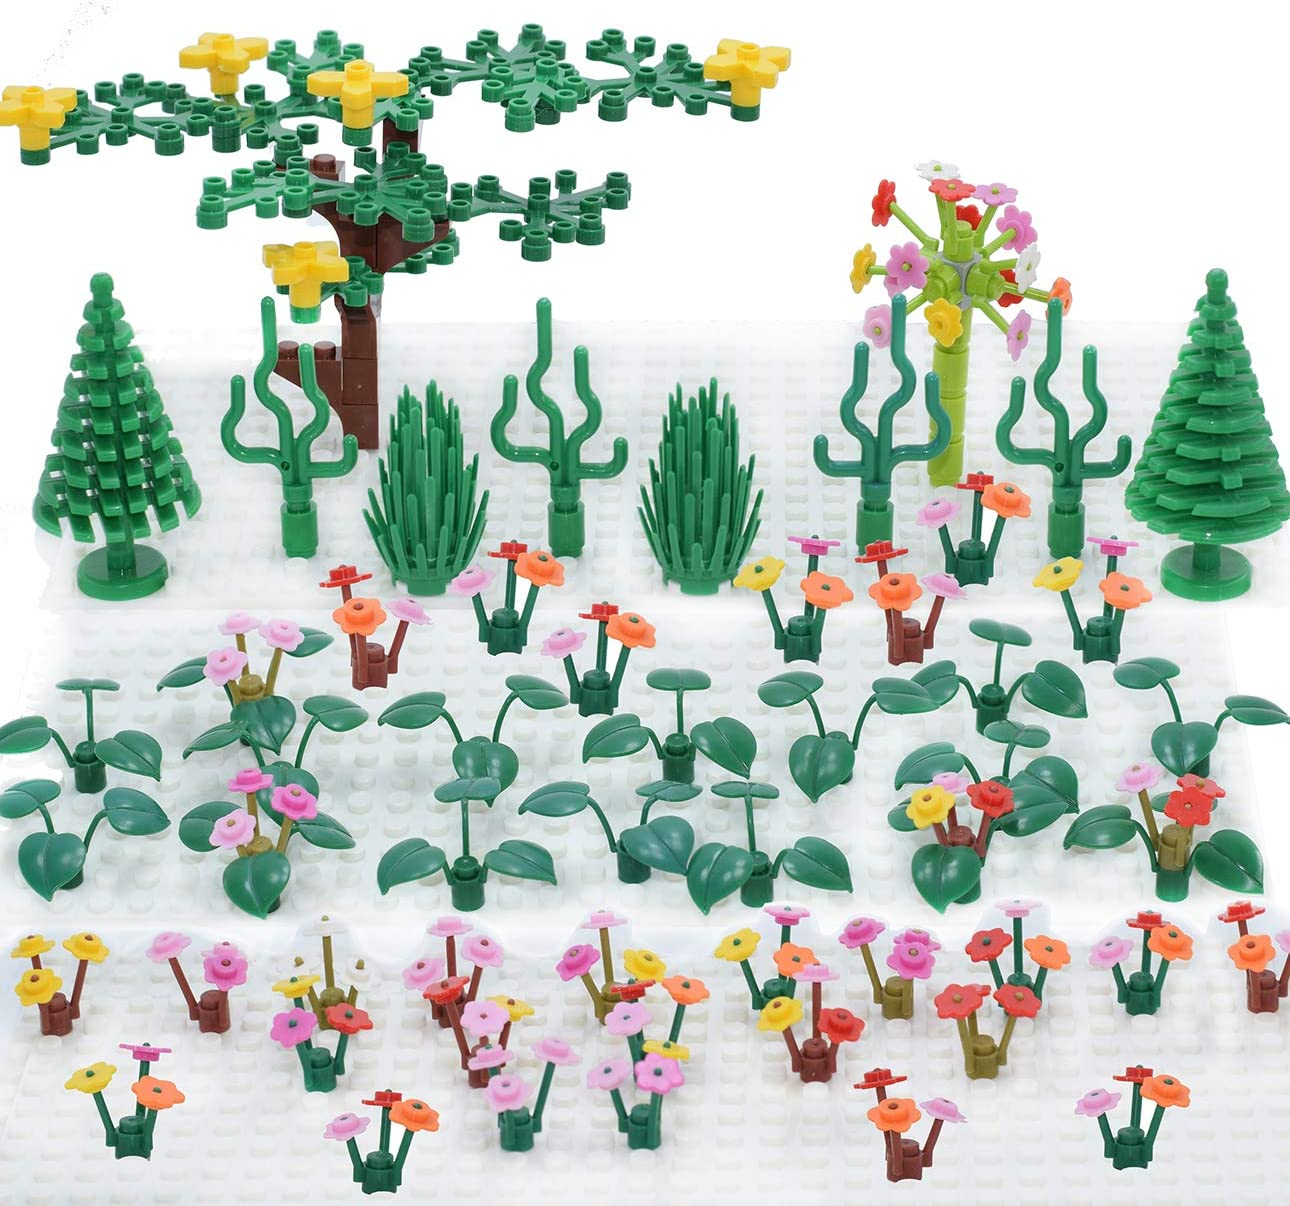 Sawaruita Plant Building Bricks Supplement, Garden Pack Trees and Flowers  Botanical Accessories Block Compatible with All Major Brands Kids Games